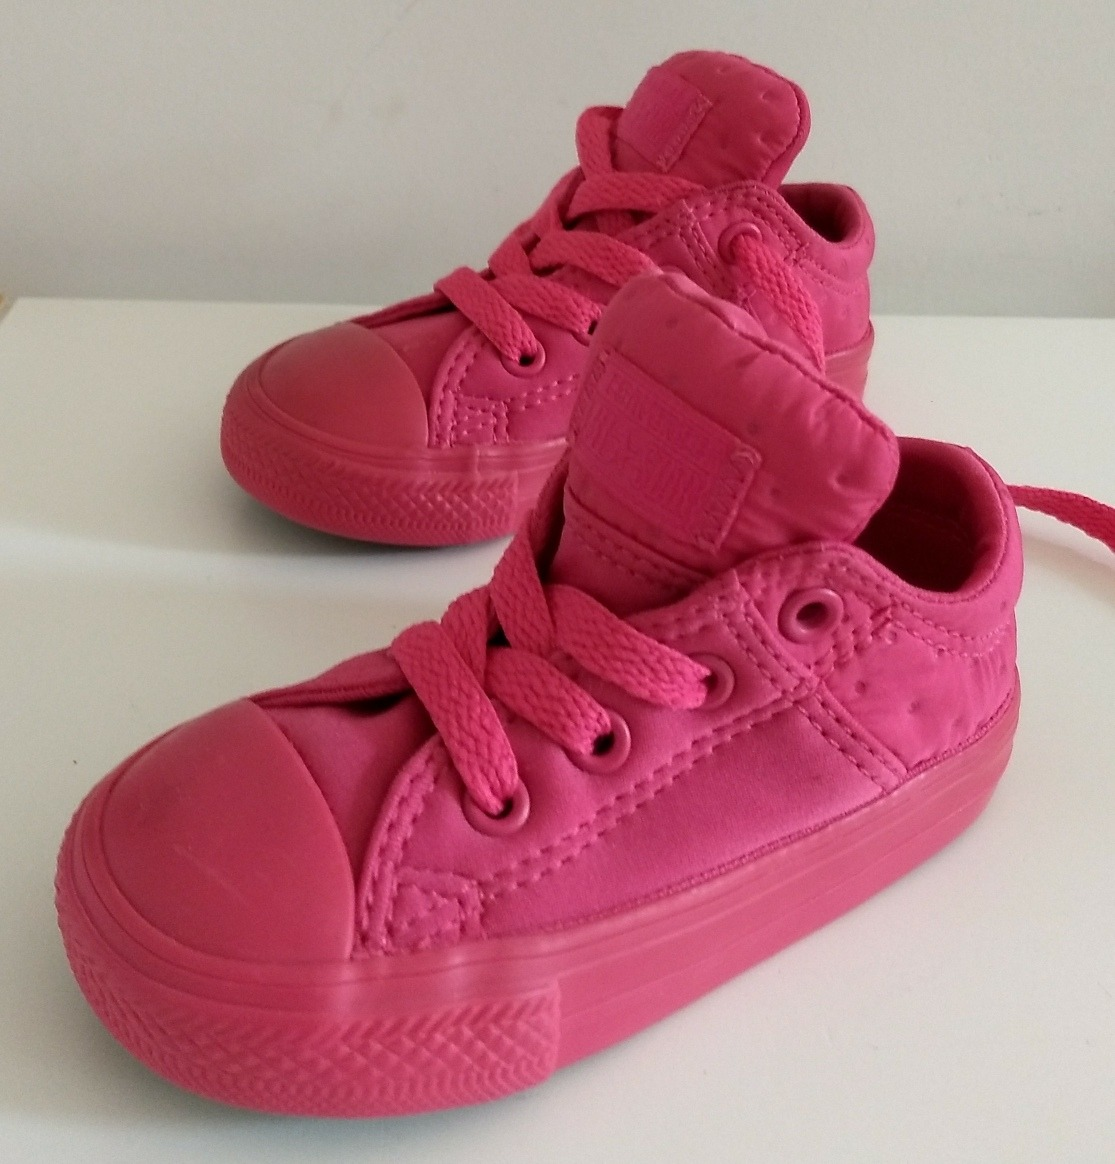 16de855bc Zapatillas Converse All Star Okm Bebe - Niñas Usa 5 -12